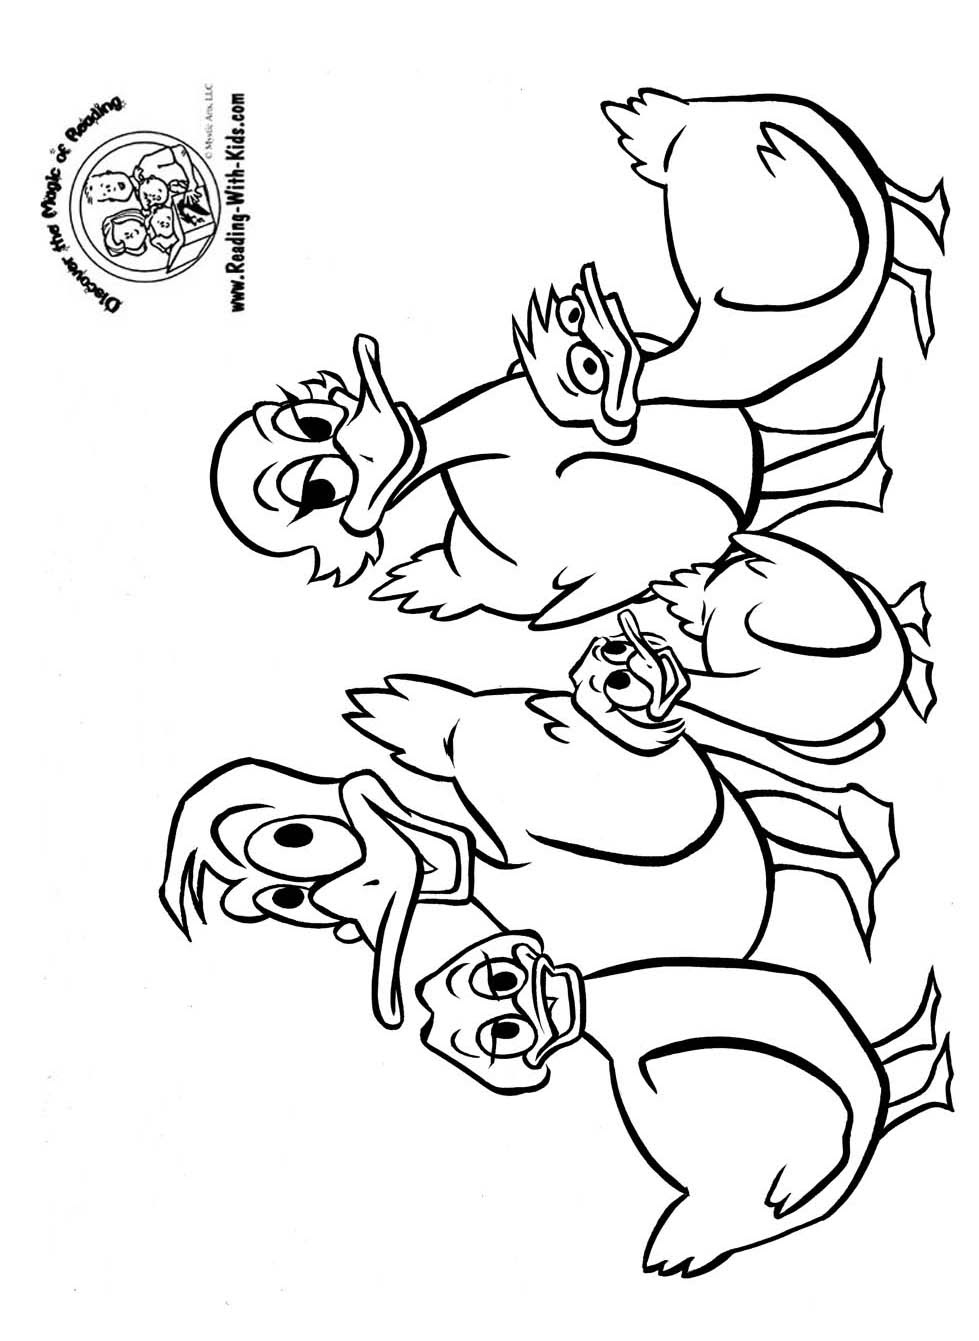 Five little ducks coloring pages download and print for free